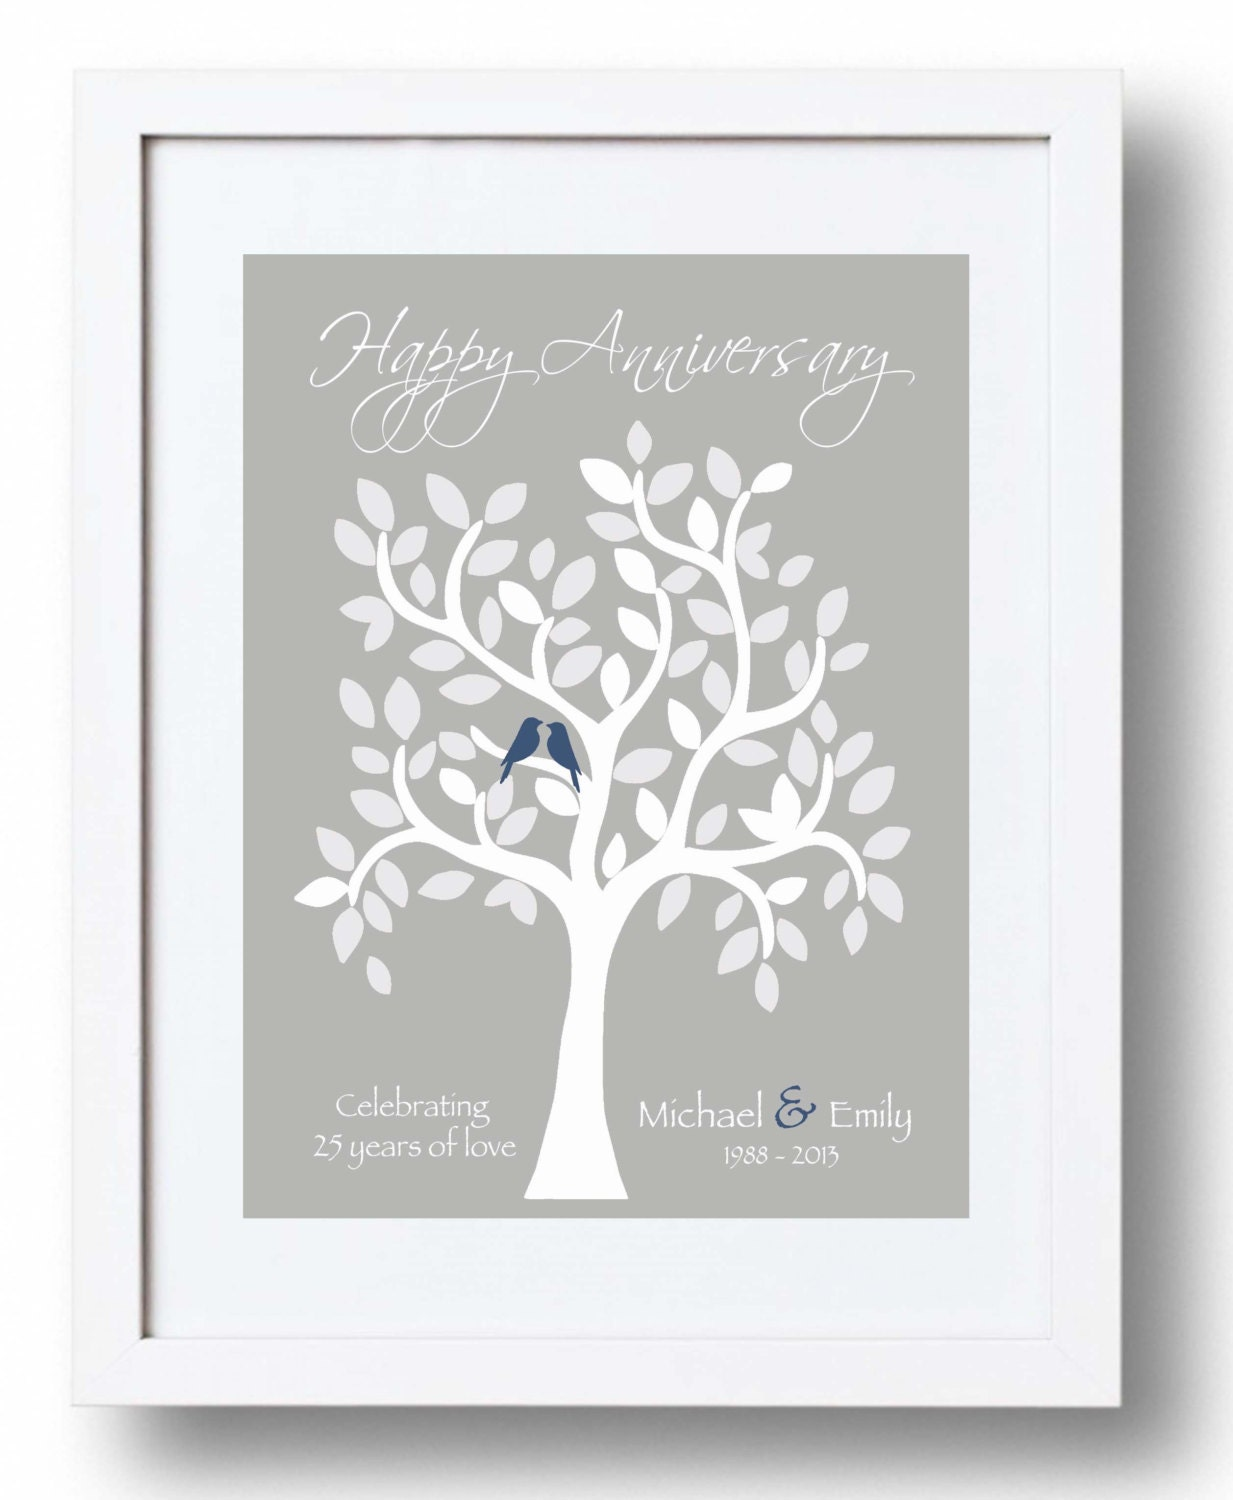 Gifts For Parents 26th Wedding Anniversary : 25th Anniversary Gift for Parents 25th Silver Anniversary